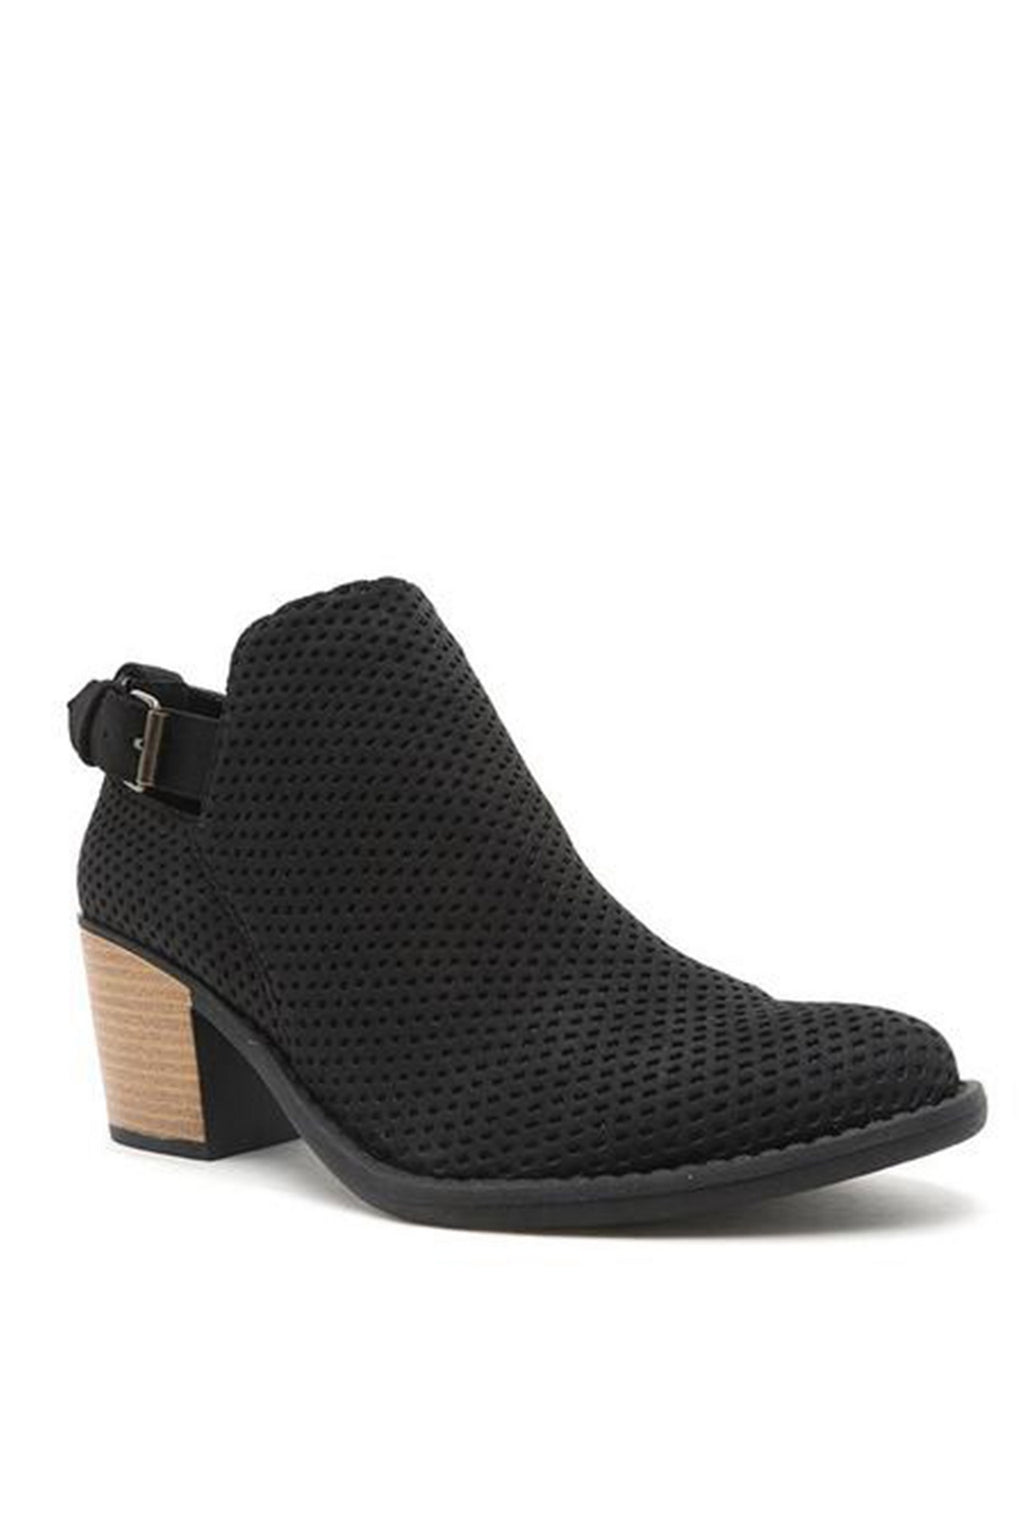 Black Perforated Ankle Bootie